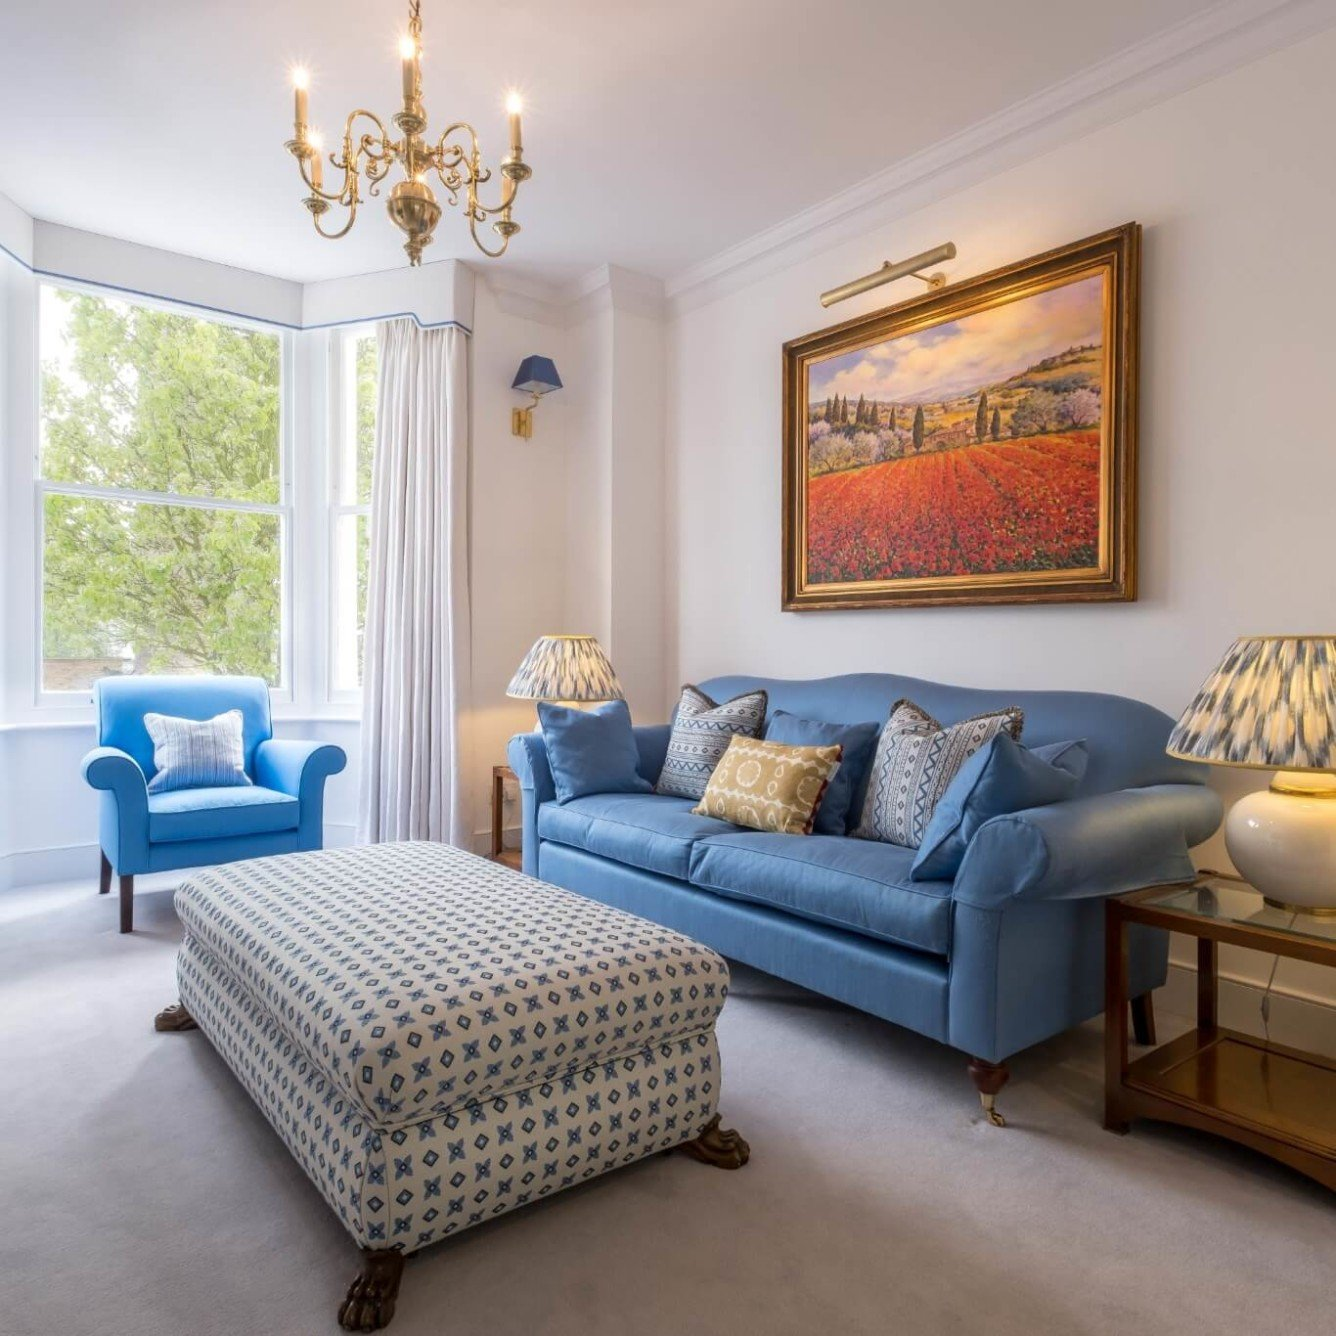 Townhouse in Wandsworth- reception room with blue sofa